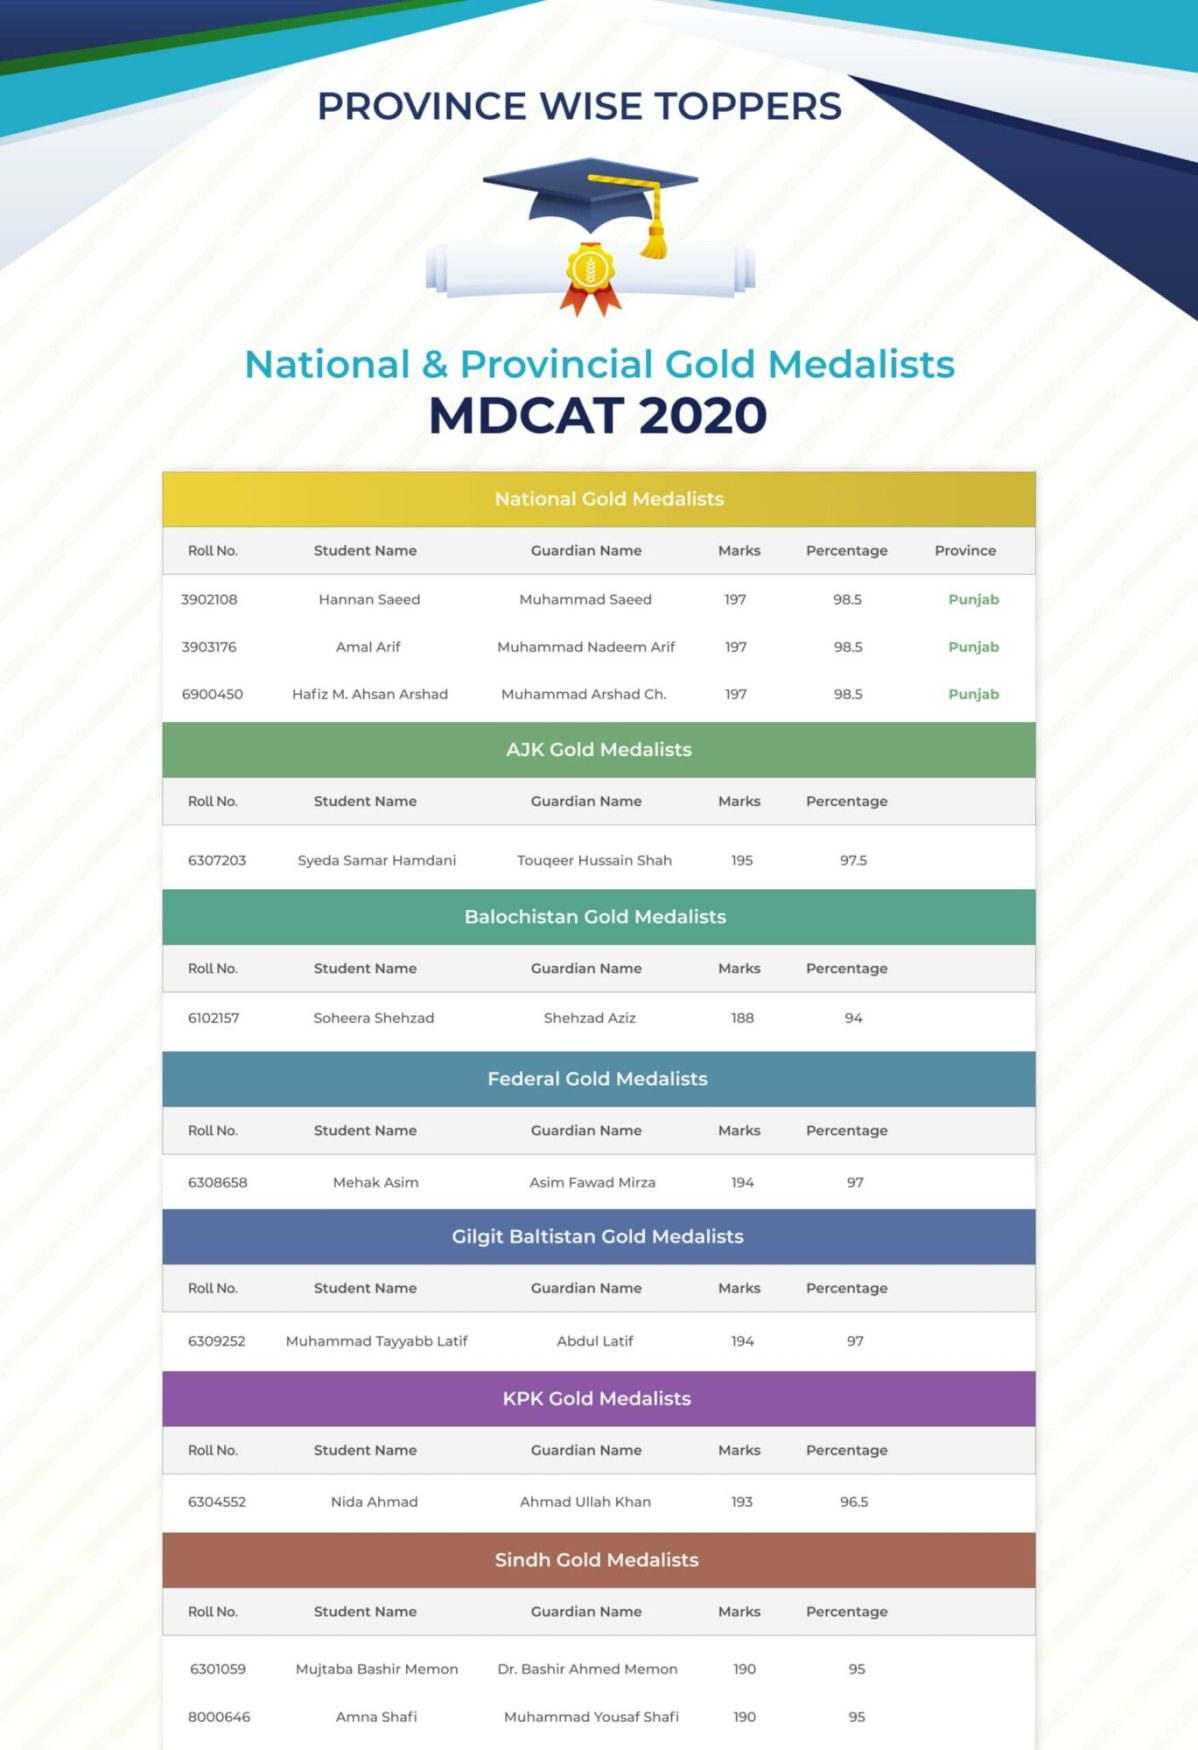 MDCAT Toppers 2020